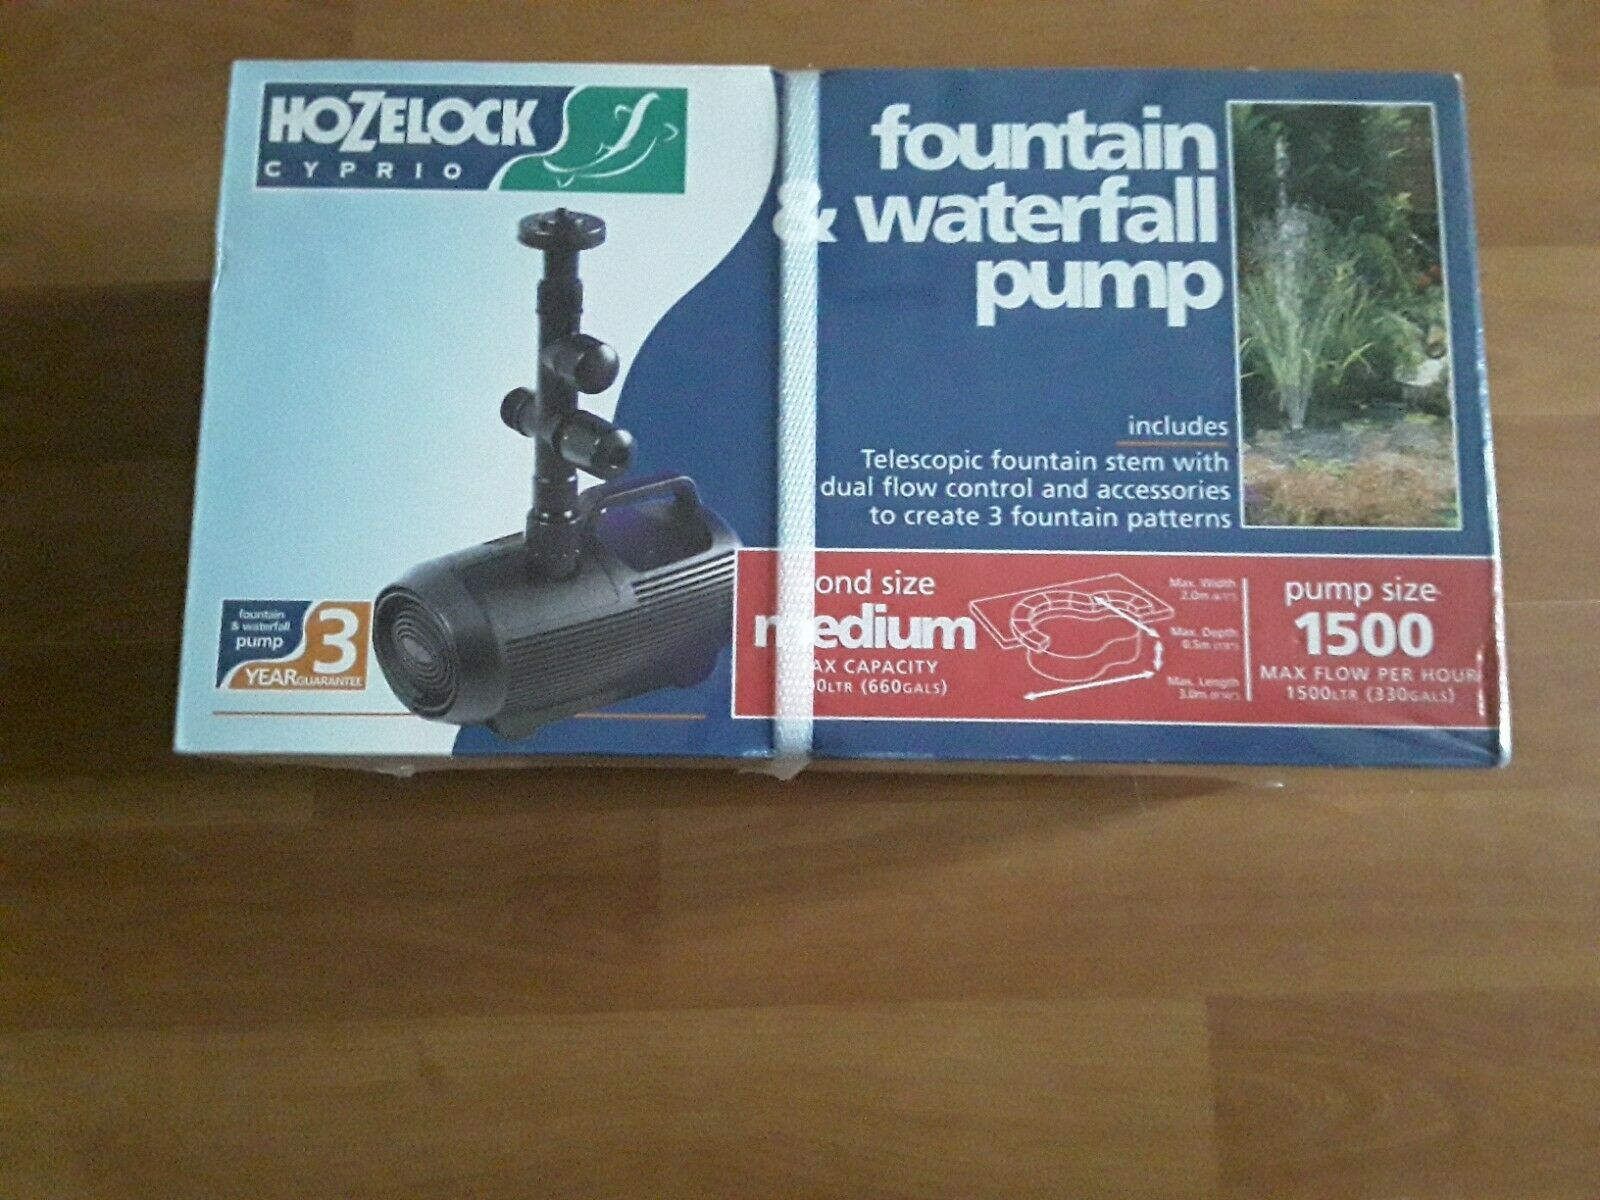 !!! BRAND NEW AND SEALED NOZELOCK CYPRIO FOUNTAIN AND WATERFALL PUMP 1500 !!!